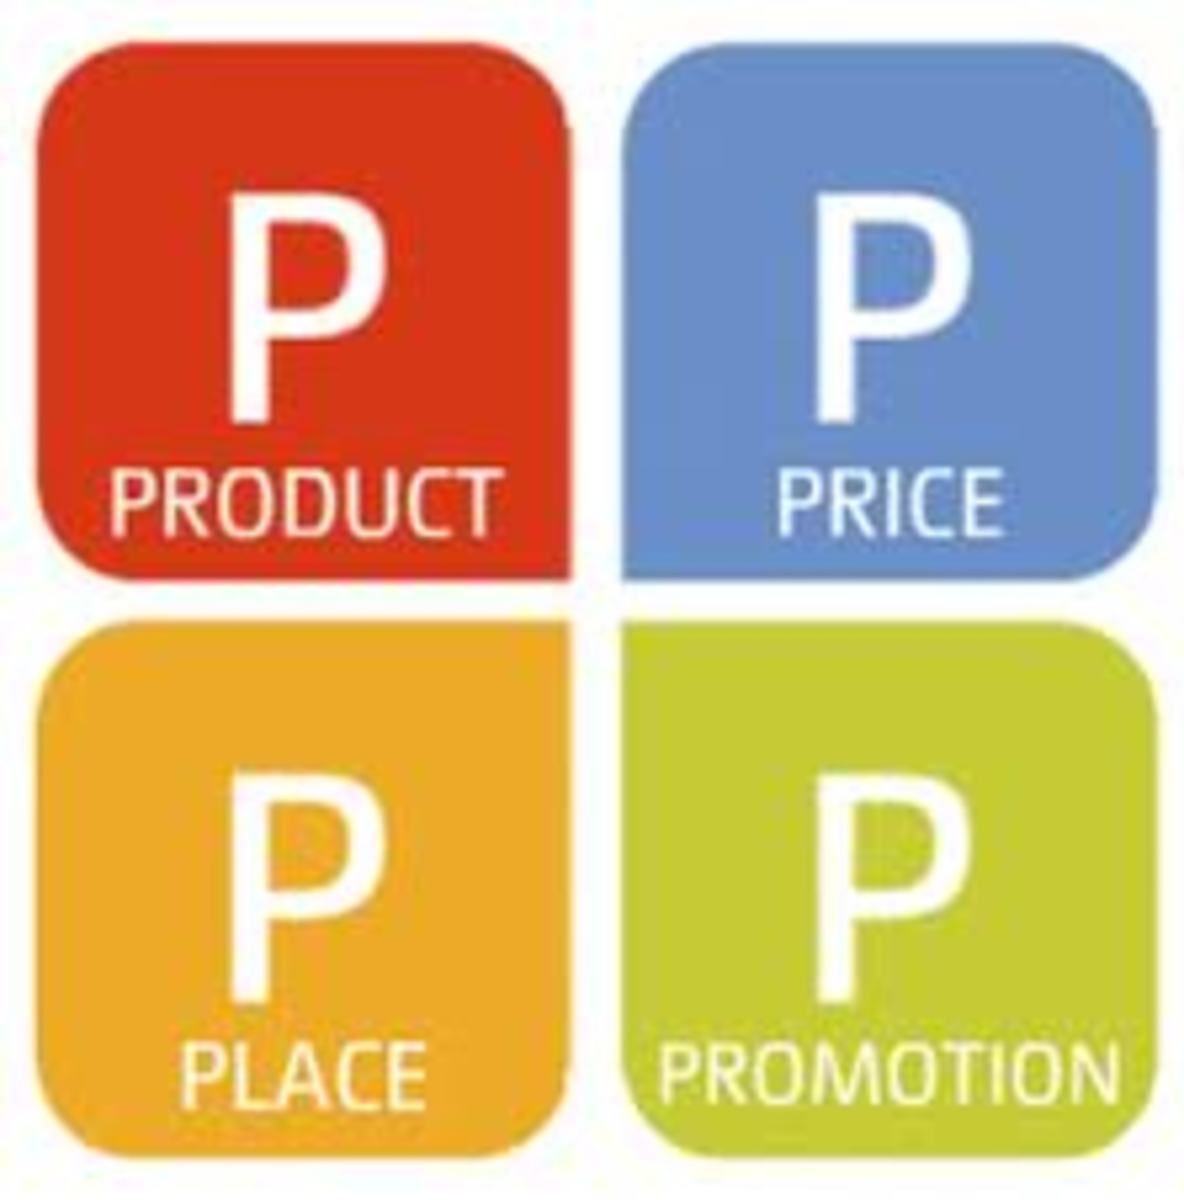 Principles of Marketing - Basic Concepts and Fundamentals